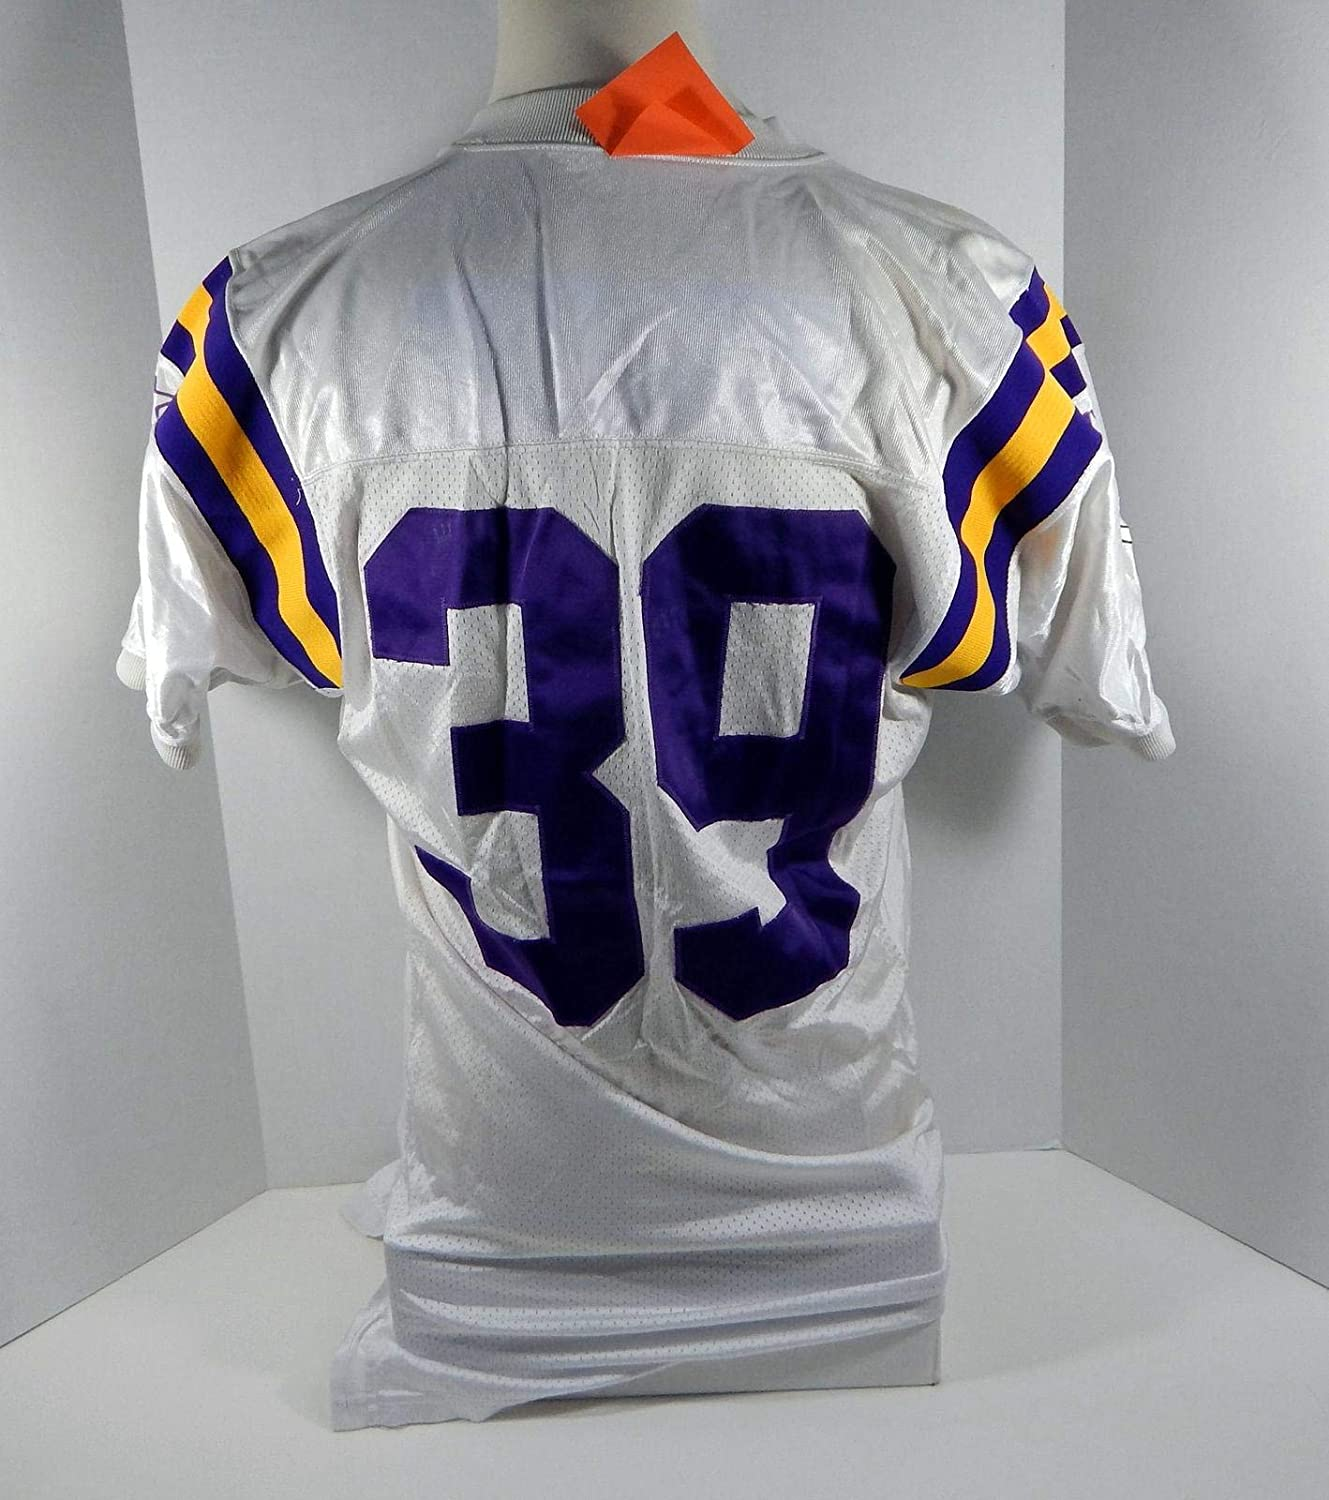 9067d8411 1997 Minnesota Vikings  39 Game Issued White Jersey - Unsigned NFL Game  Used Jerseys at Amazon s Sports Collectibles Store